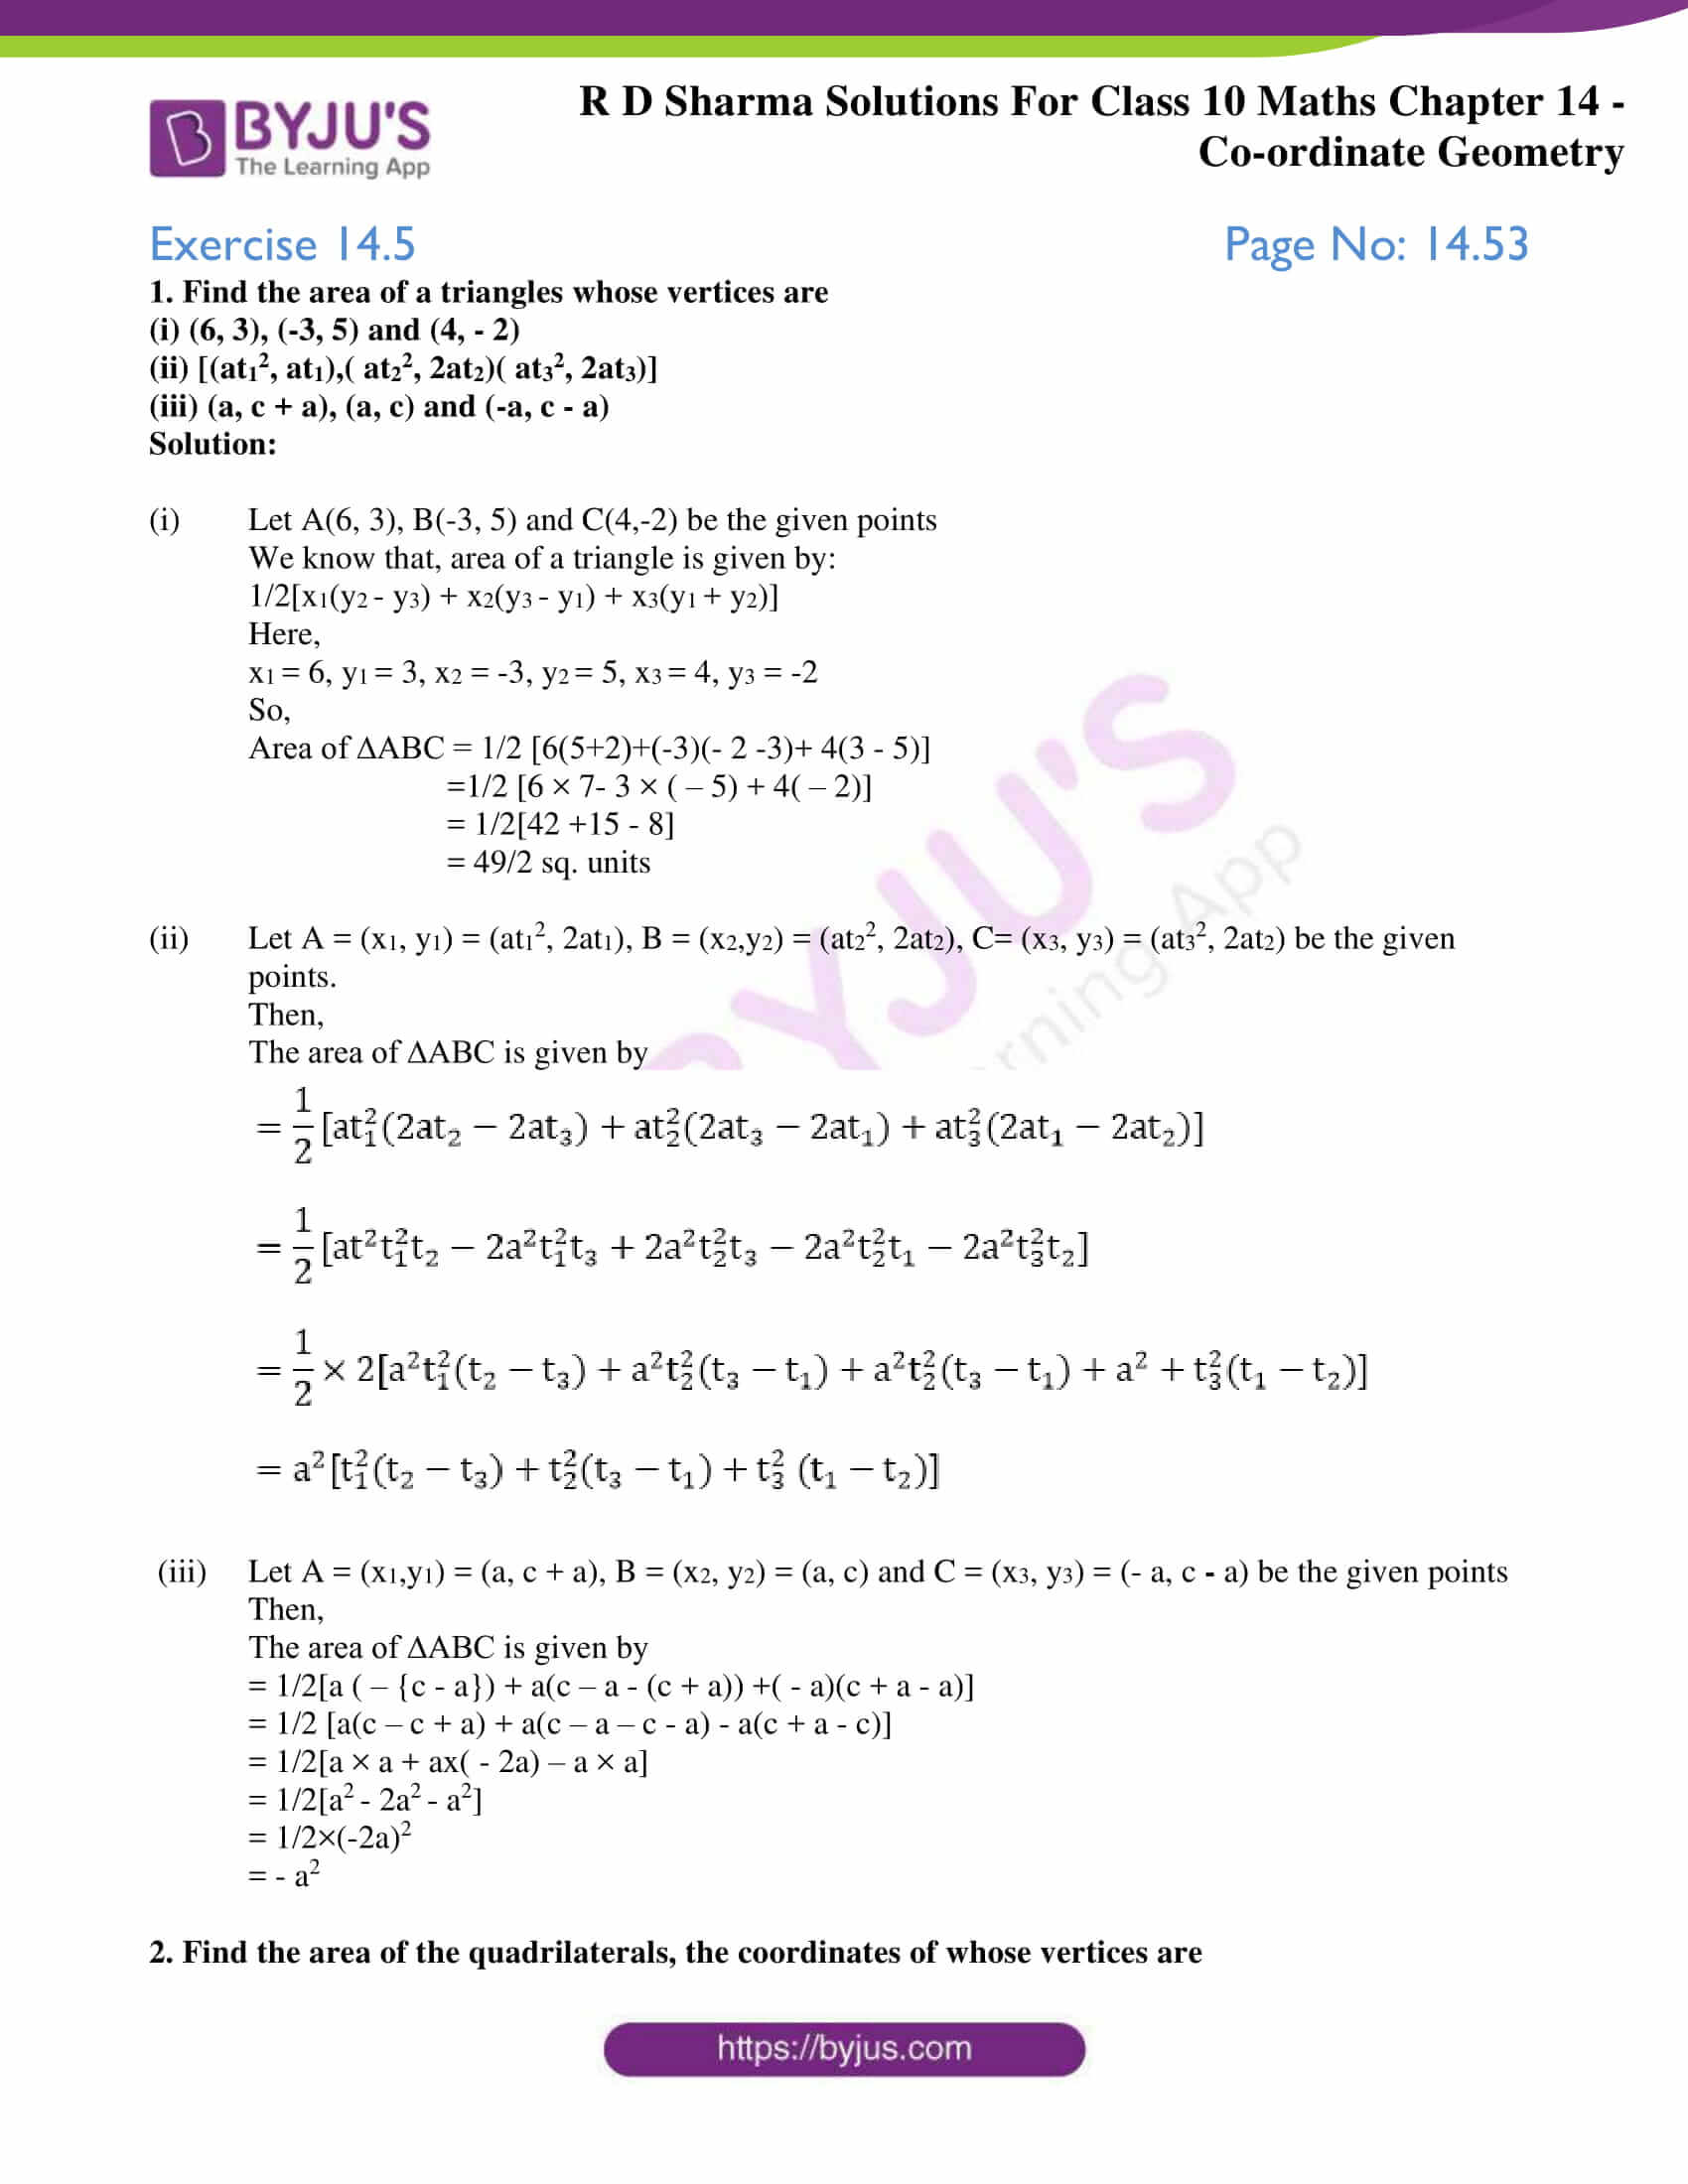 rd sharma solutions class 10 chapter 14 exercise 5